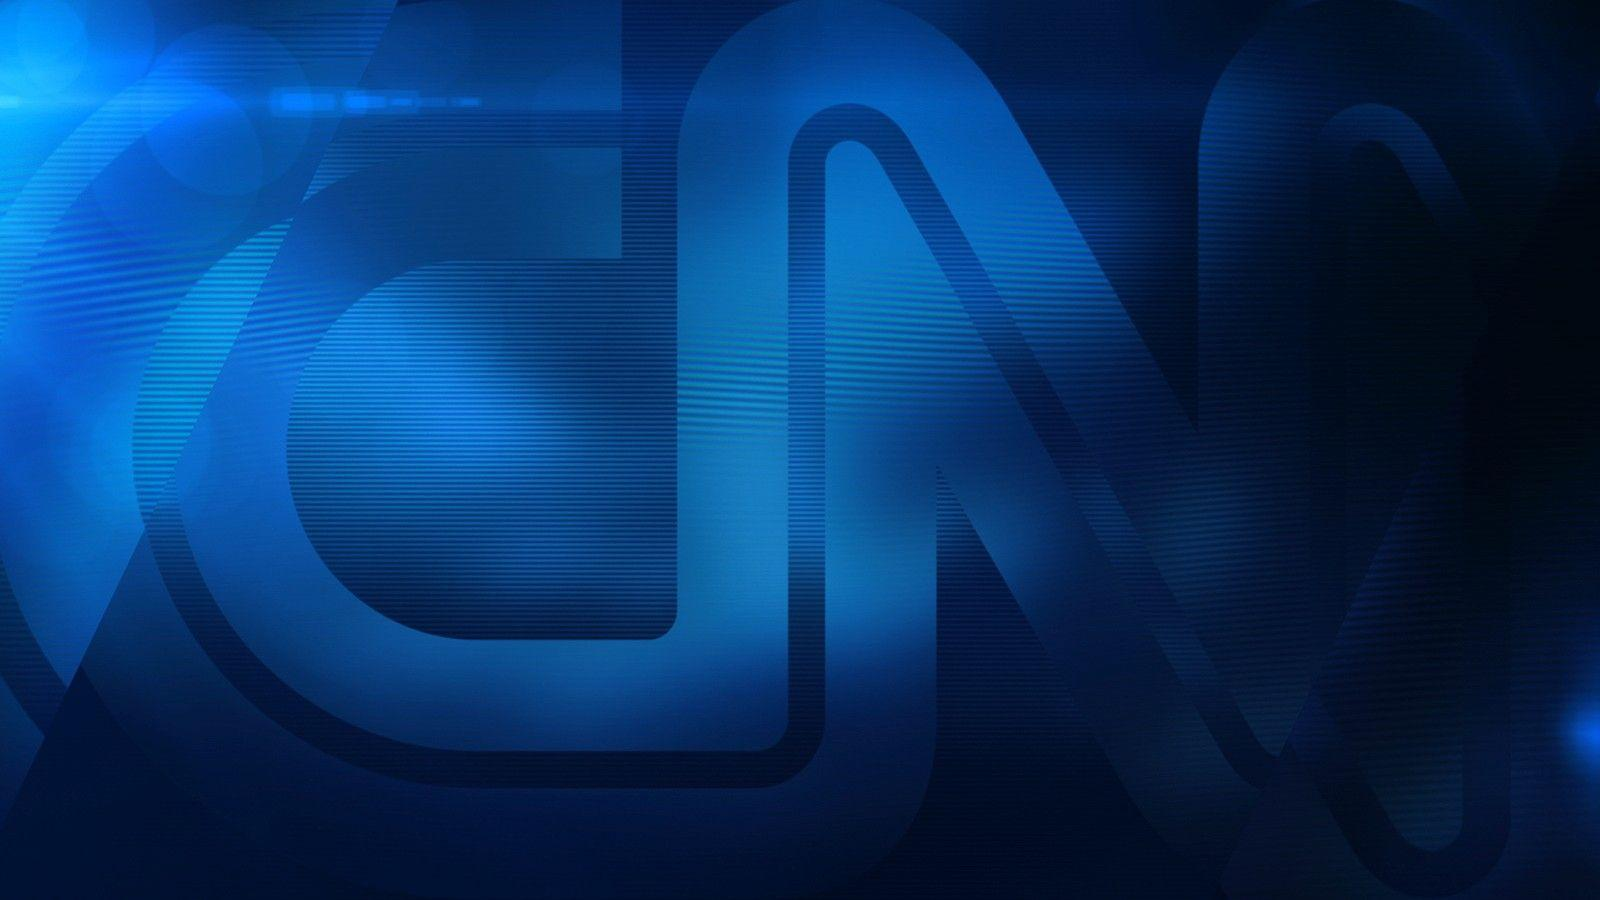 cnn logo wallpaper 72525